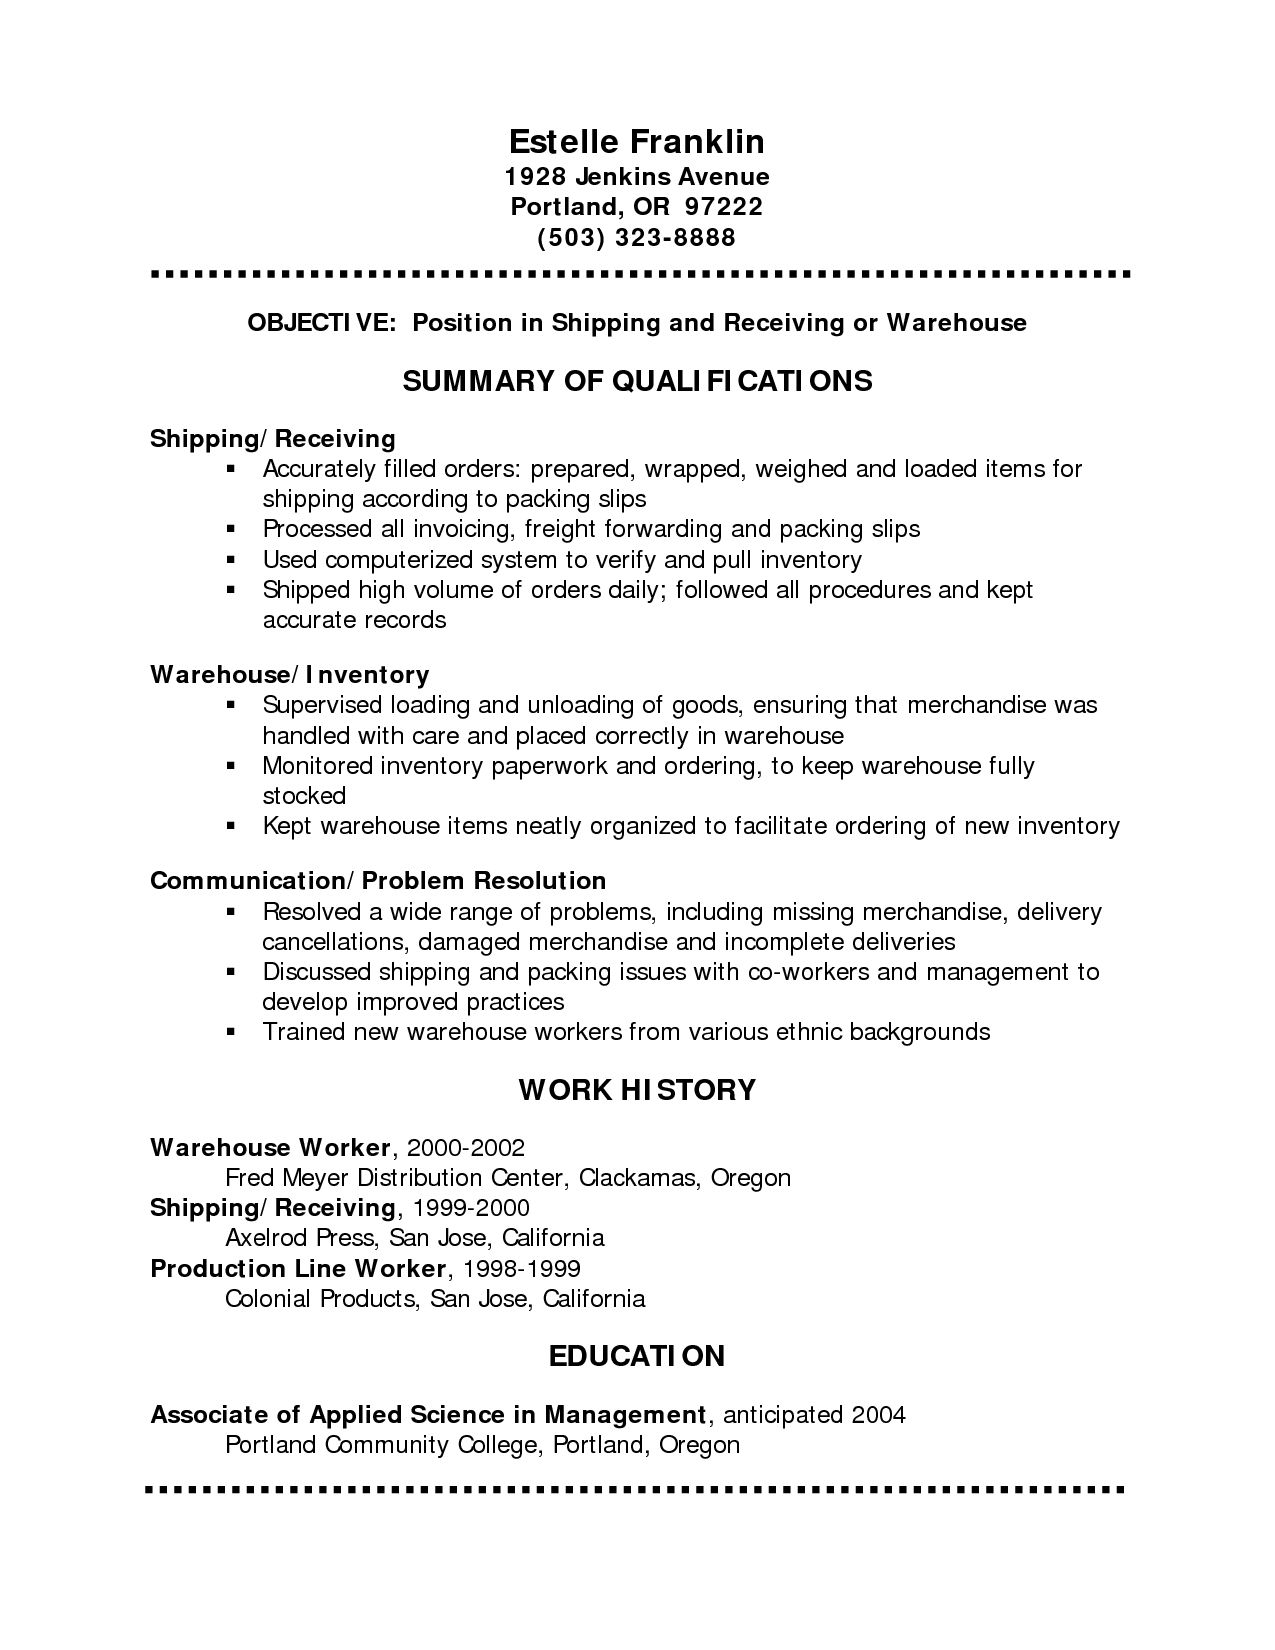 Warehouse Resume Sample Your Guide The Best Free Resume Templates Good Samples Examples